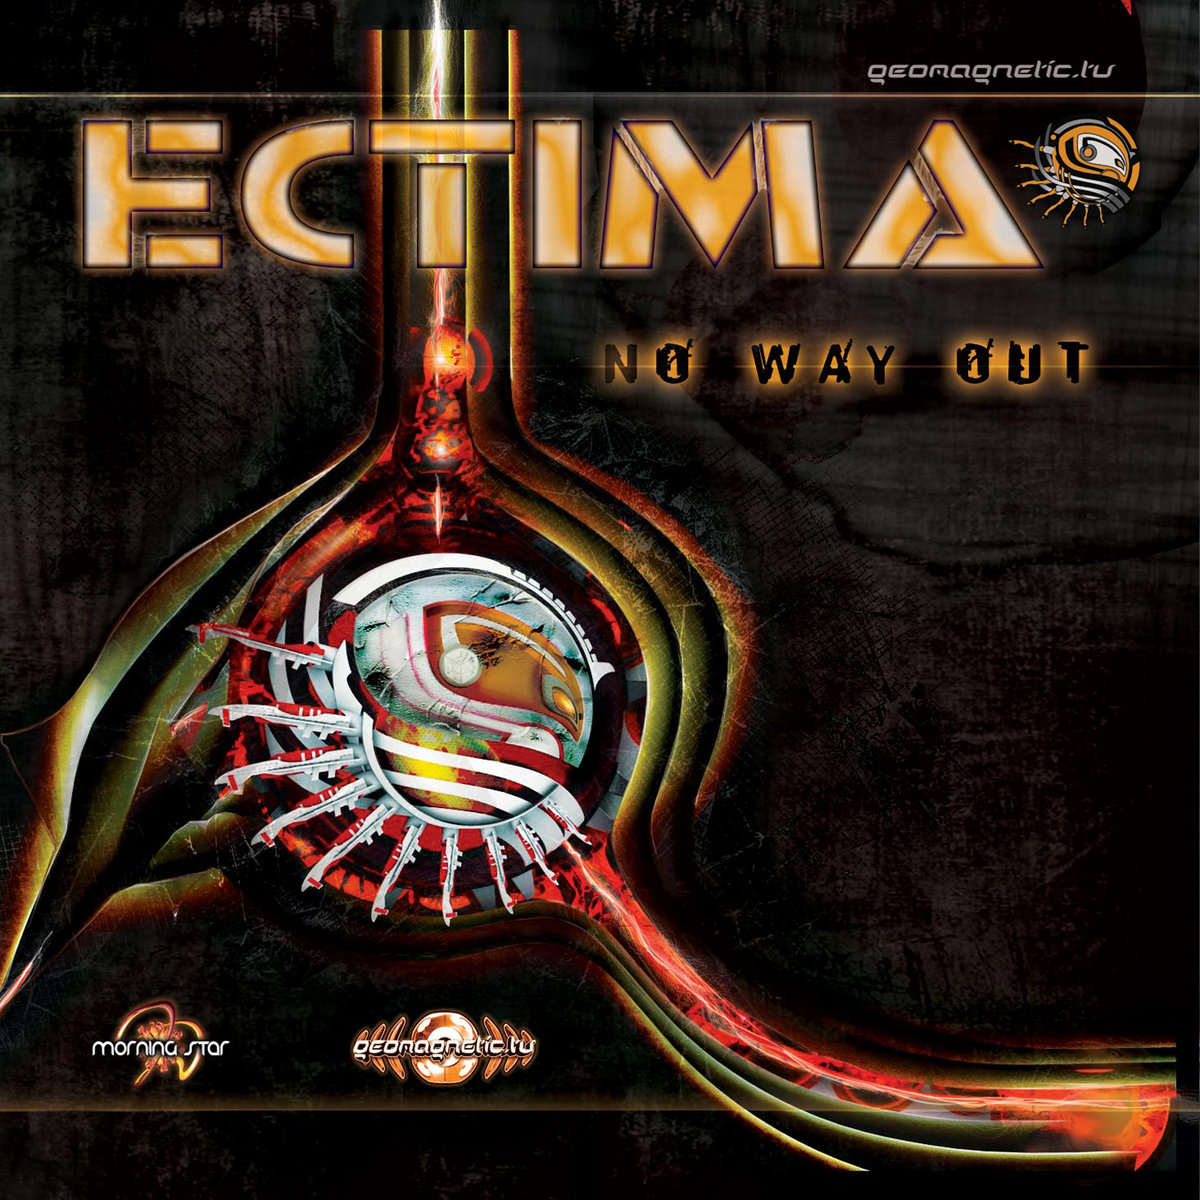 Ectima - No Way Out (artwork)